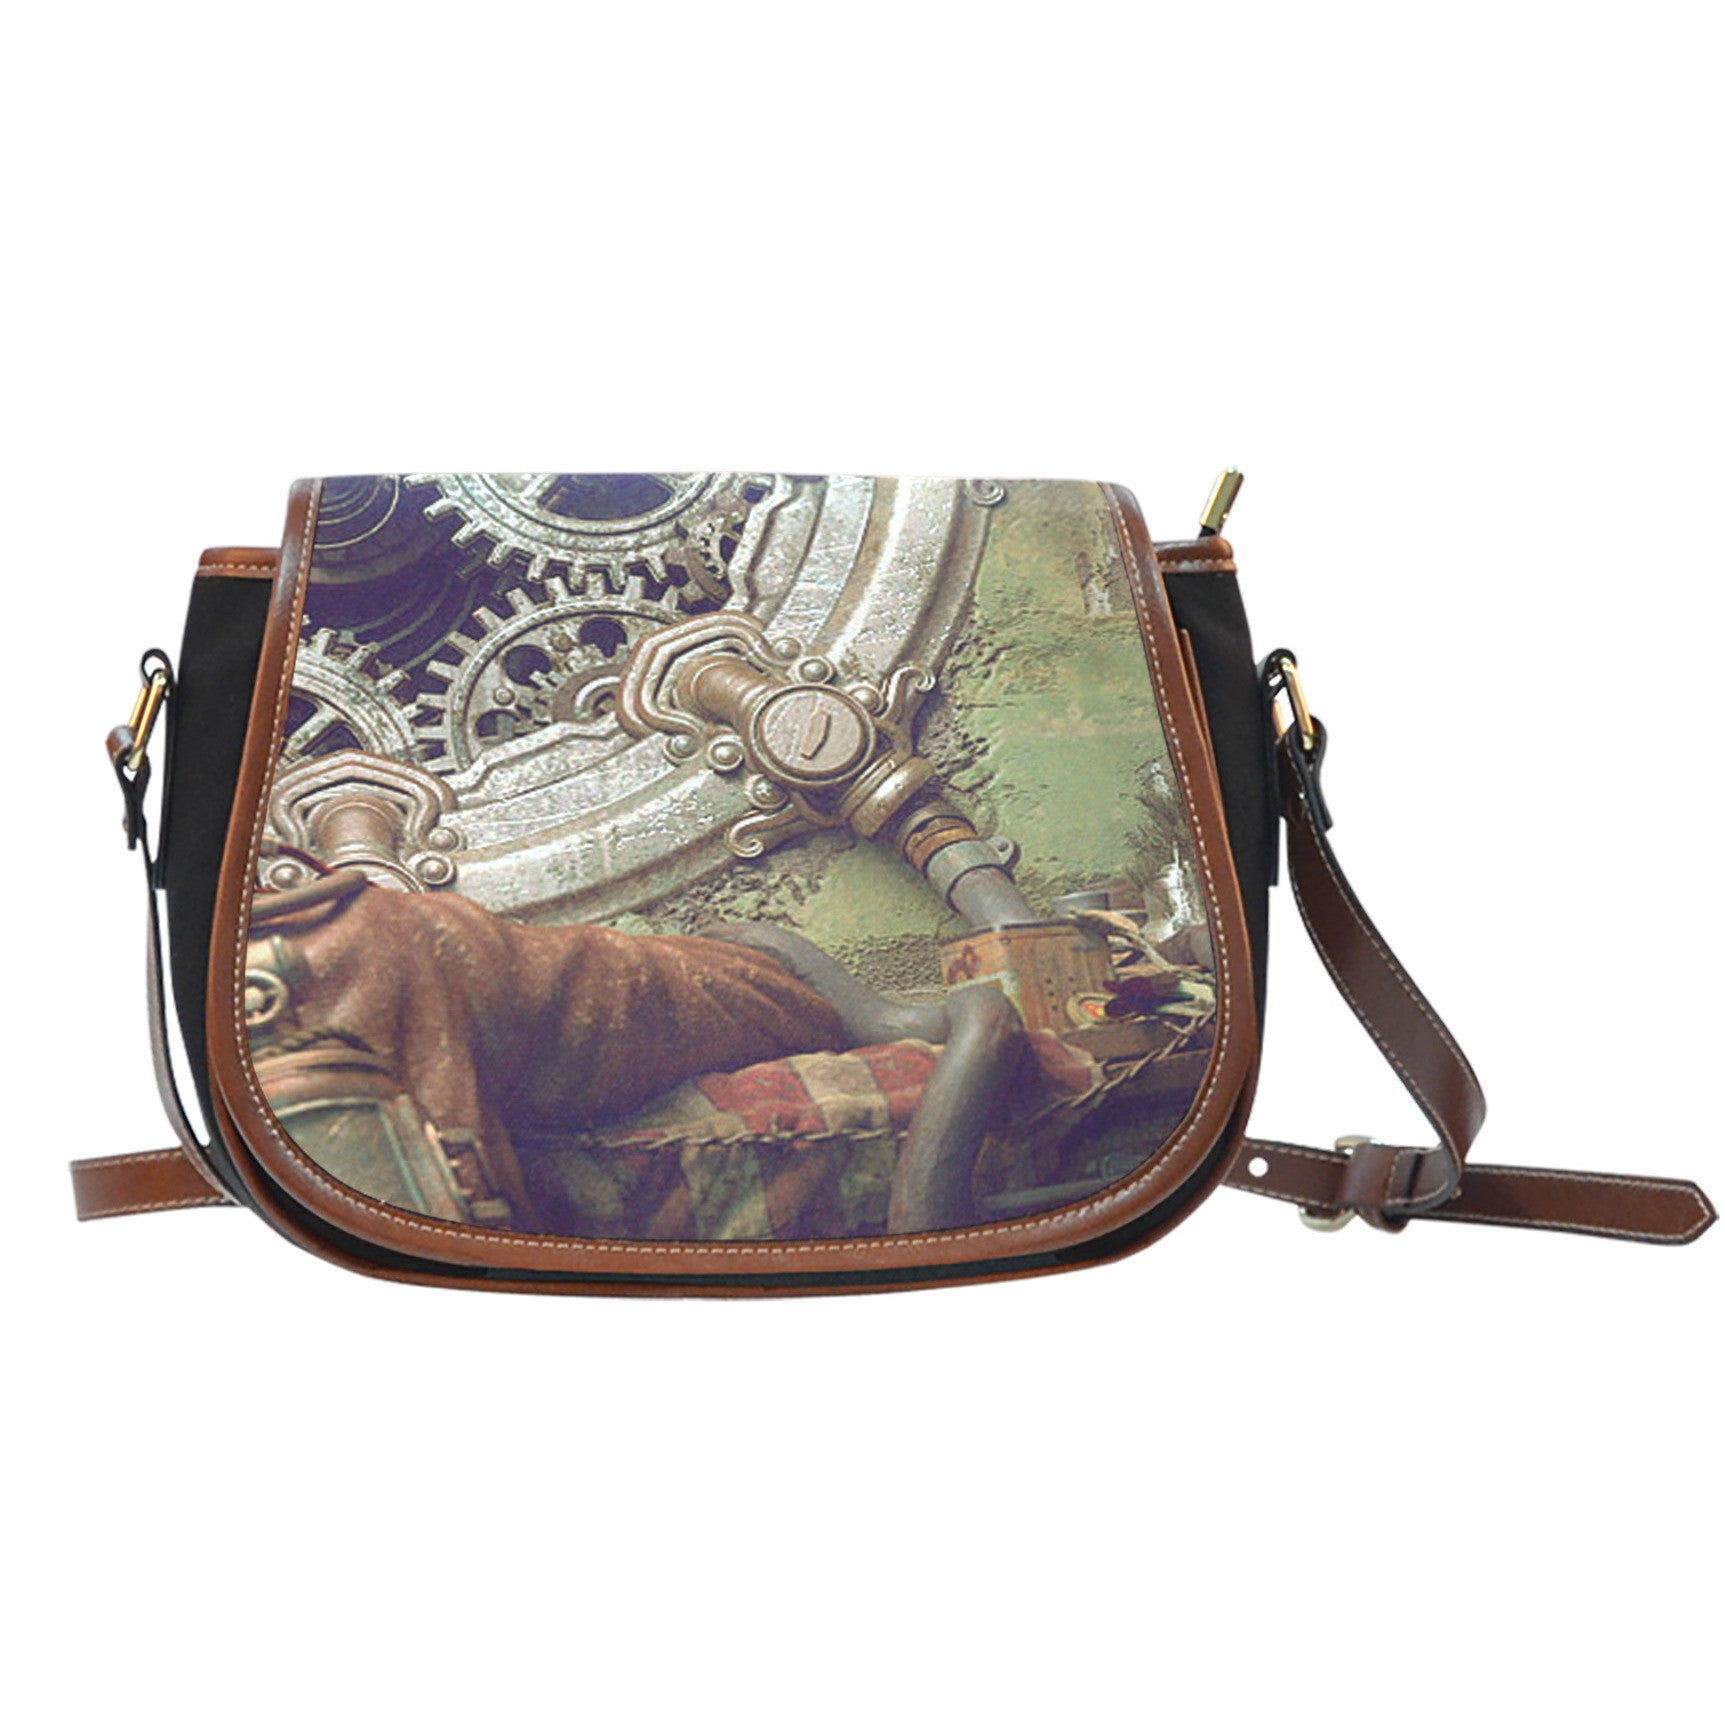 Steampunk Saddle Bag - Hello Moa